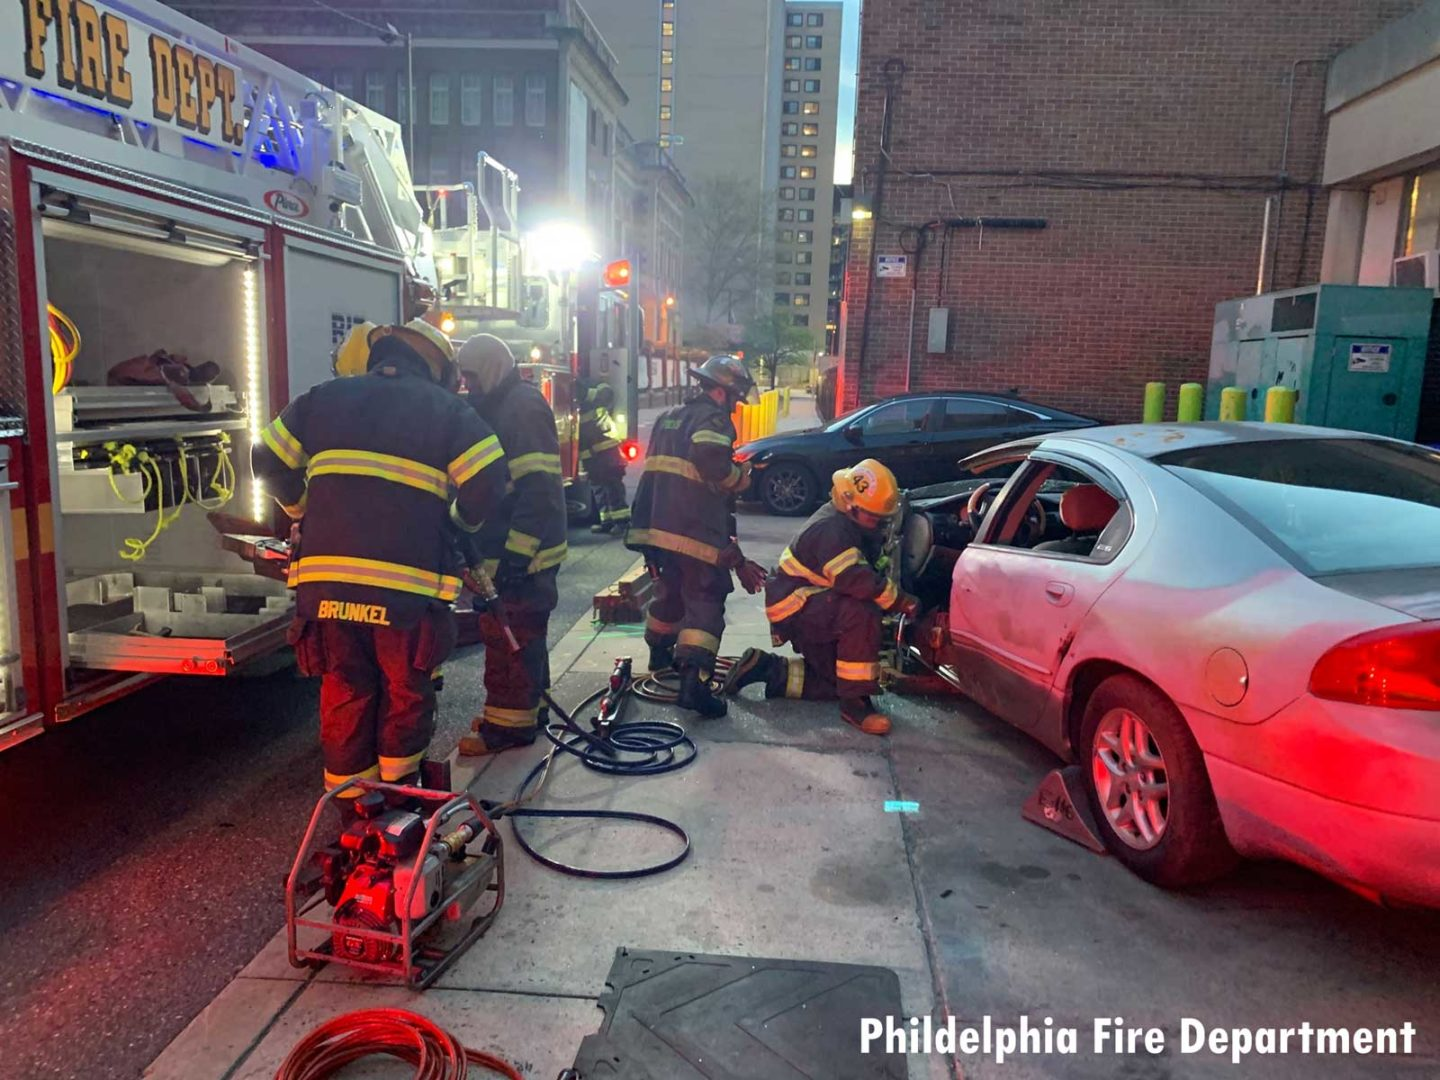 Firefighters working on vehicle extrication